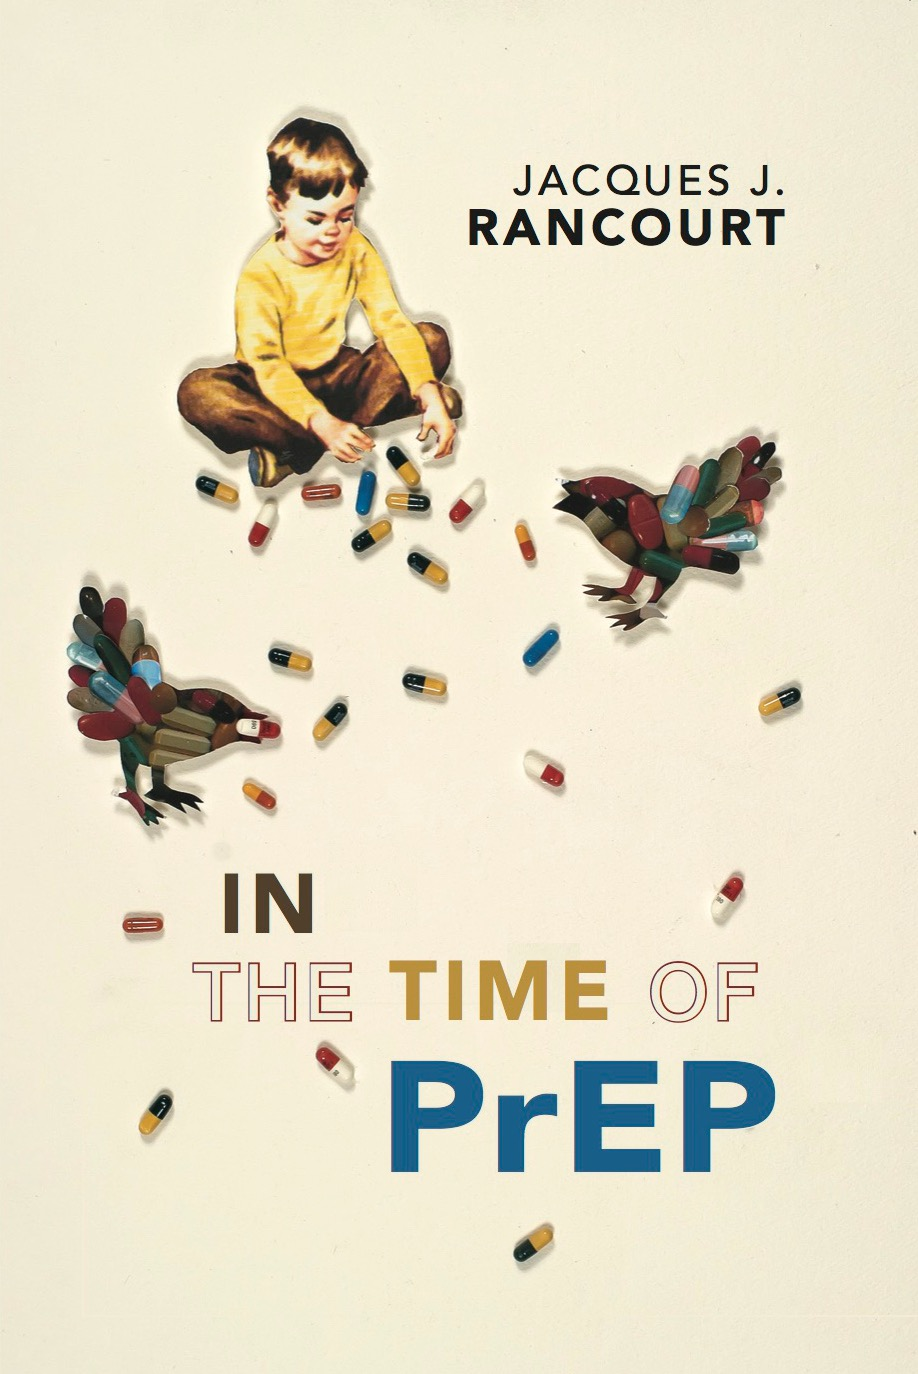 Cover of In the Time of PrEP, a chapbook by Jacques J. Rancourt. The cover art, by Barton Lidicé Beneš, is an untitled collage from 2006. The collage has a light yellow background and contains a mid-century styled image of a small boy sitting and playing with HIV medication in the form of actual pills. Two birds fashioned of HIV medications appear on either side of the boy.